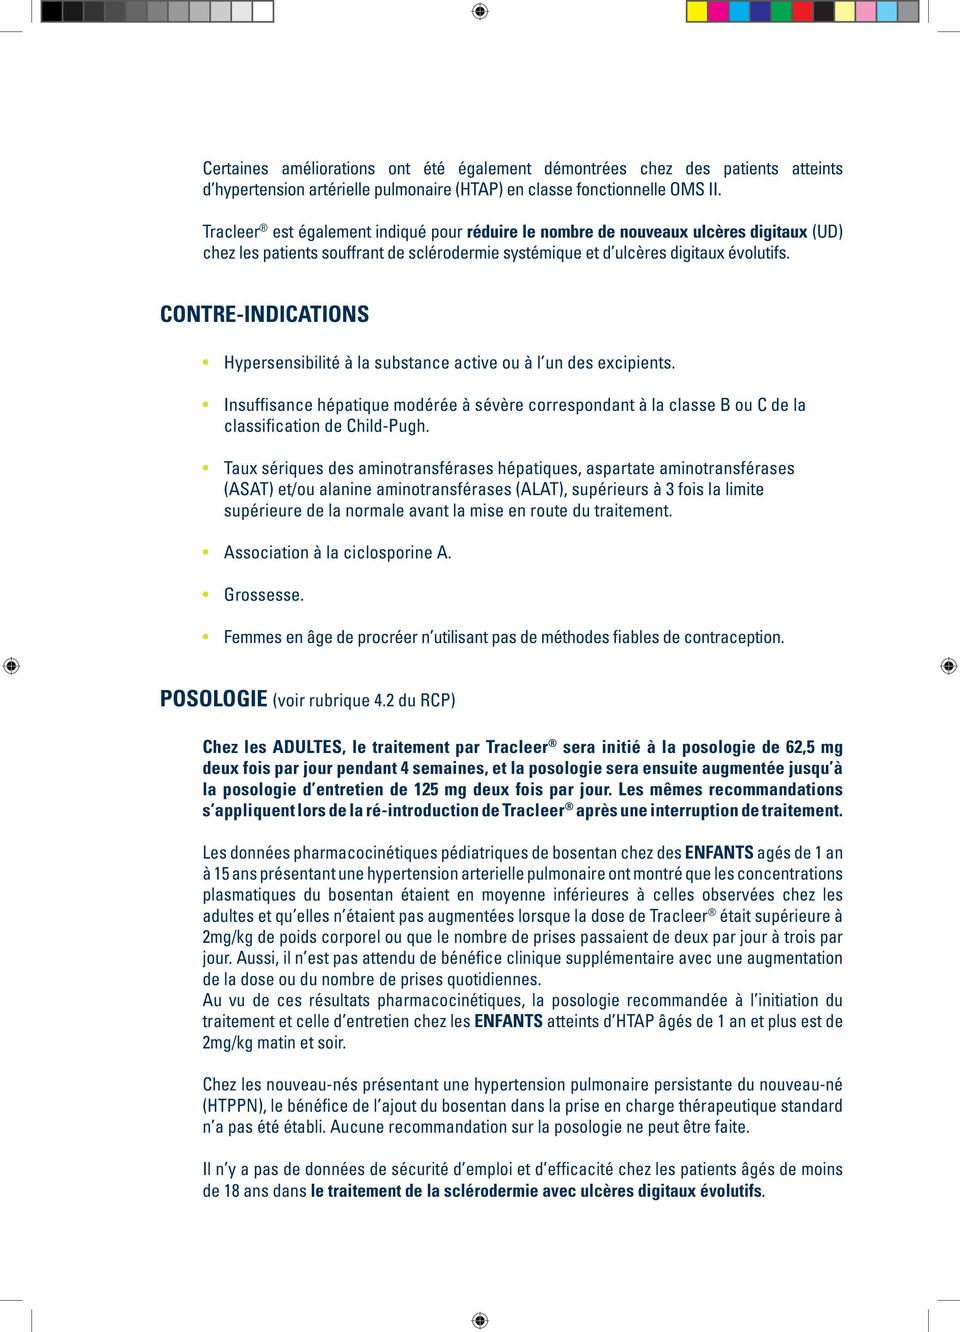 CONTRE-INDICATIONS Hypersensibilité à la substance active ou à l un des excipients. Insuffisance hépatique modérée à sévère correspondant à la classe B ou C de la classification de Child-Pugh.